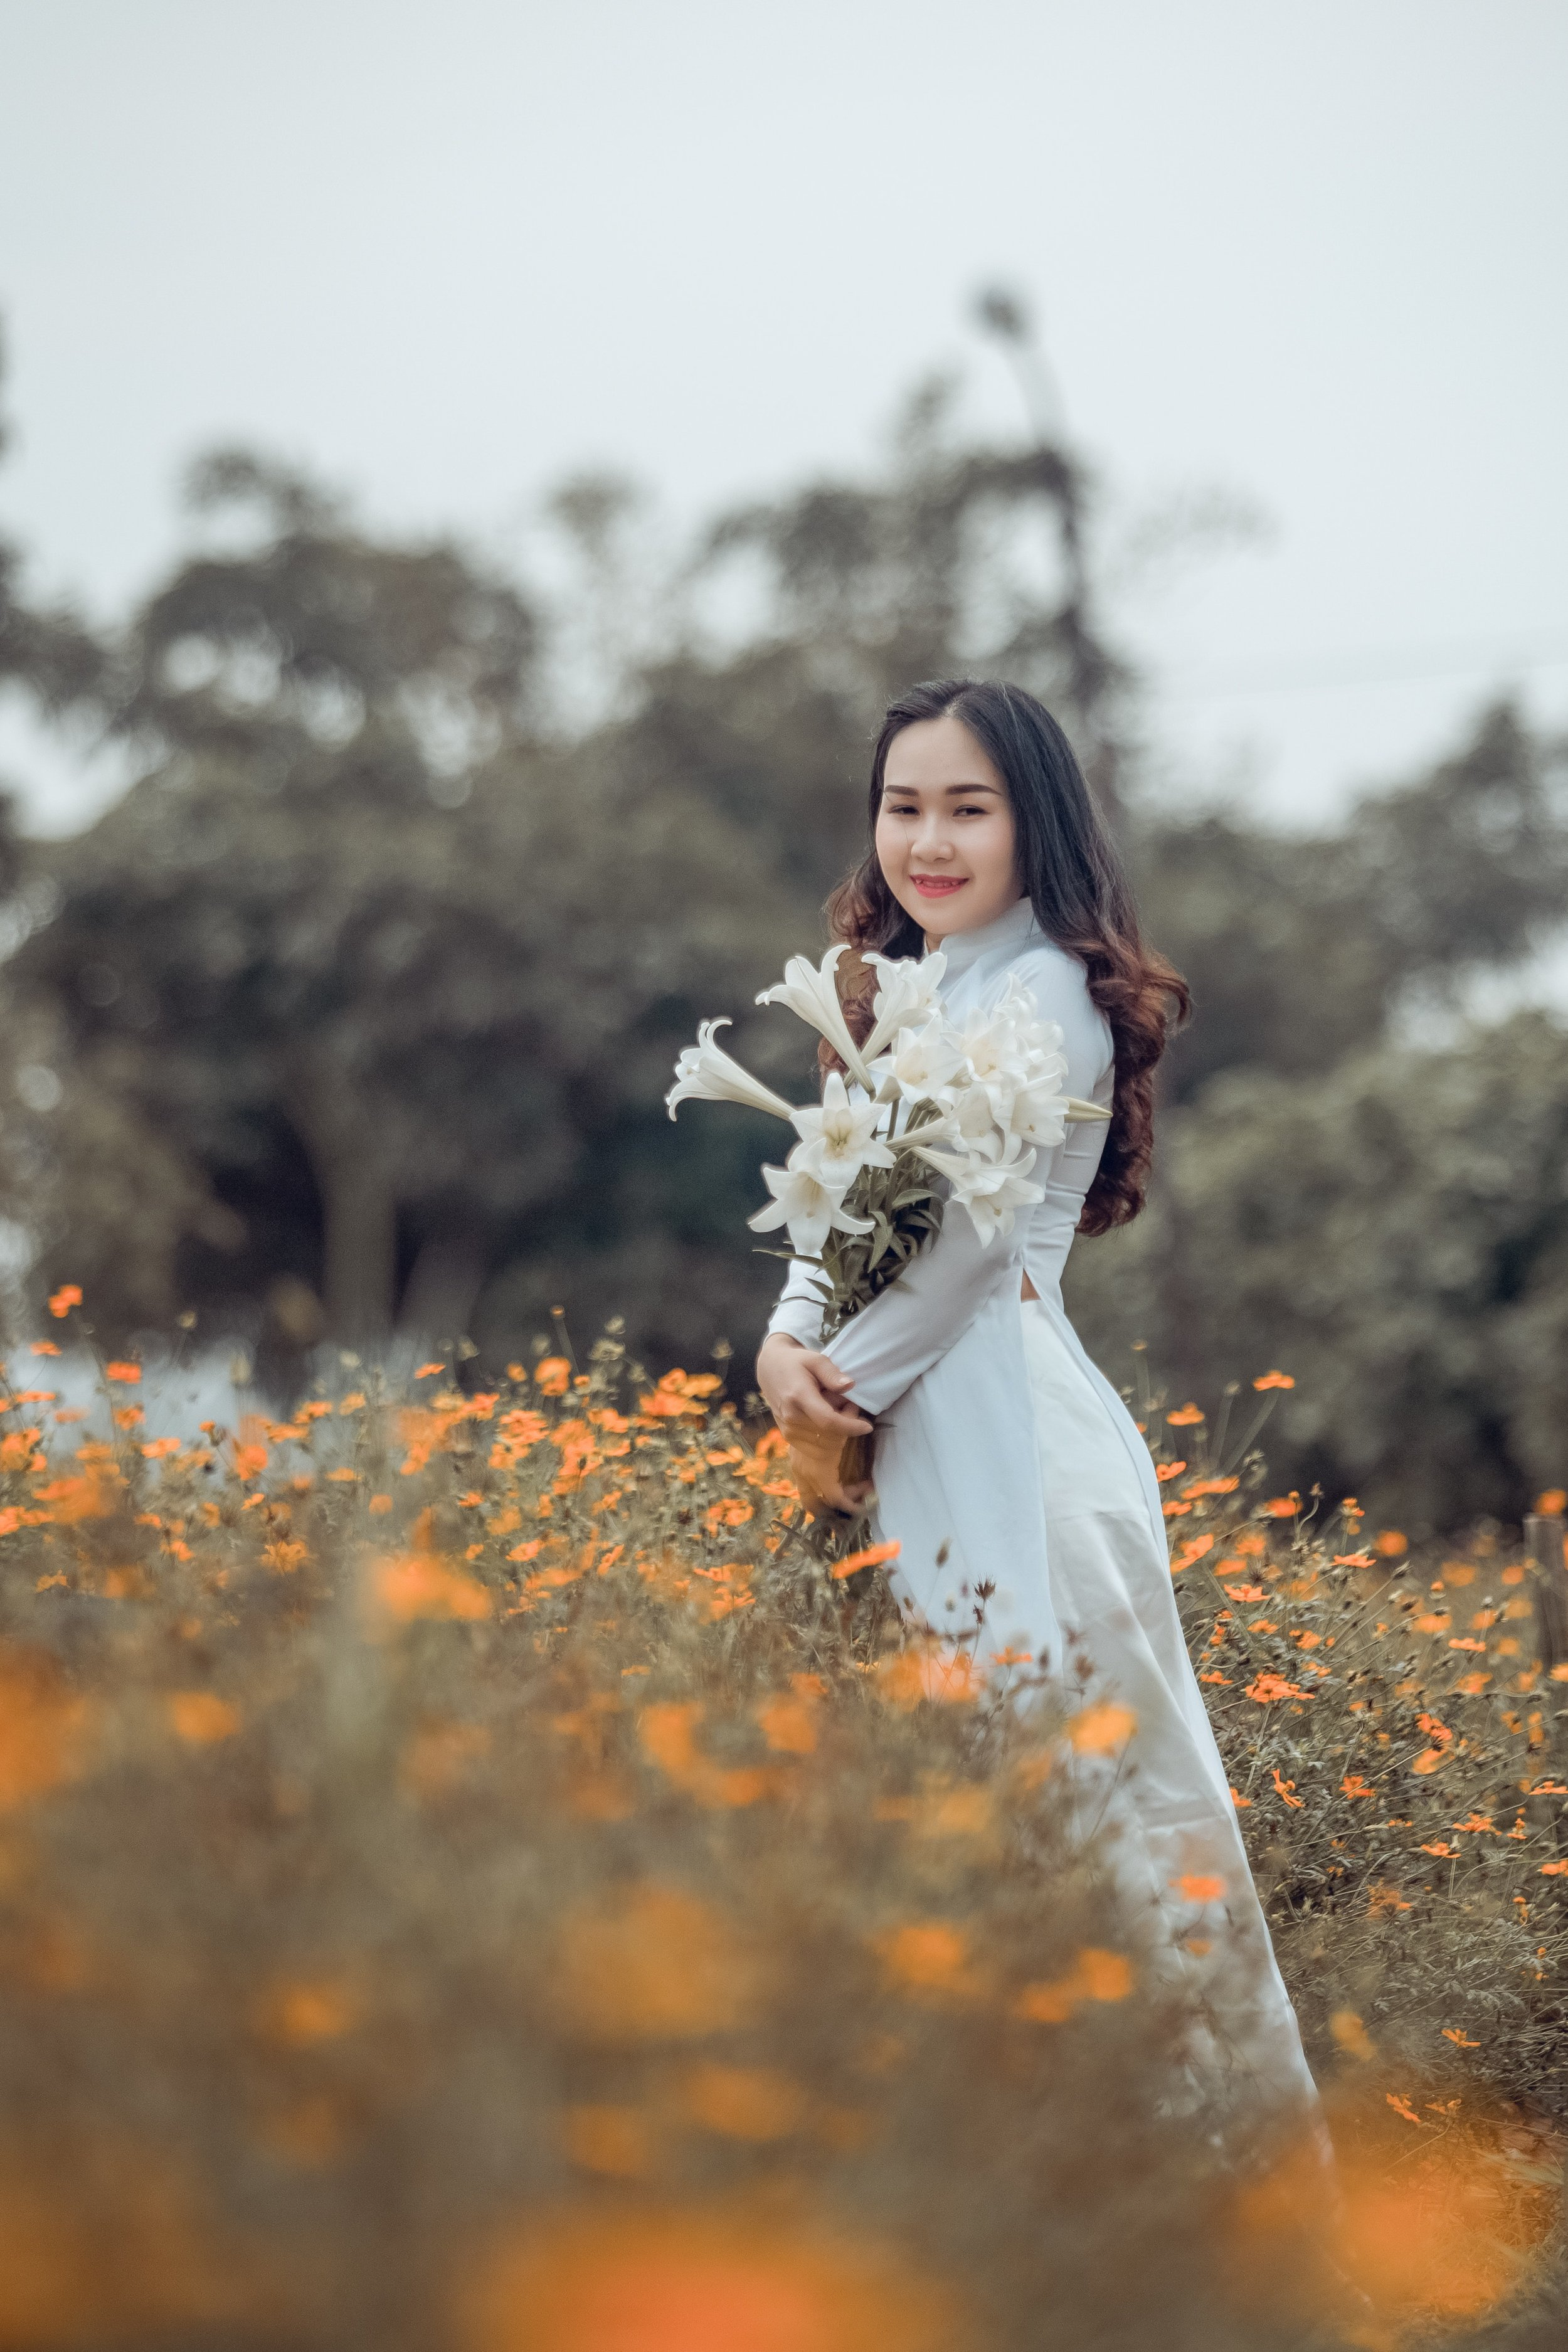 ao-dai-beautiful-daylight-2081897.jpg